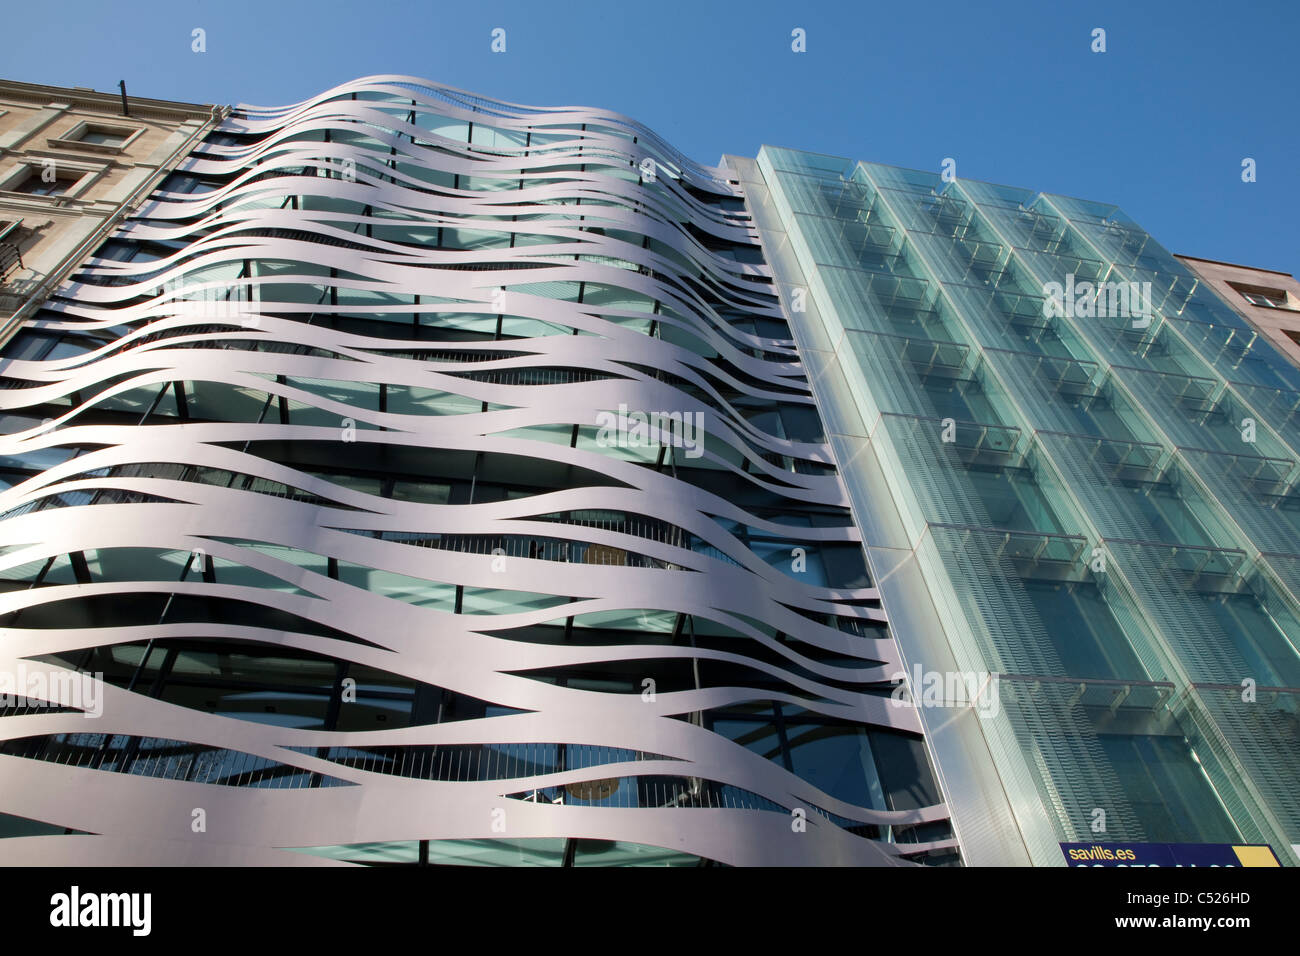 Modern Architecture Office Buildings on Passeig Gracia Street, Barcelona, Catalonia, Spain - Stock Image